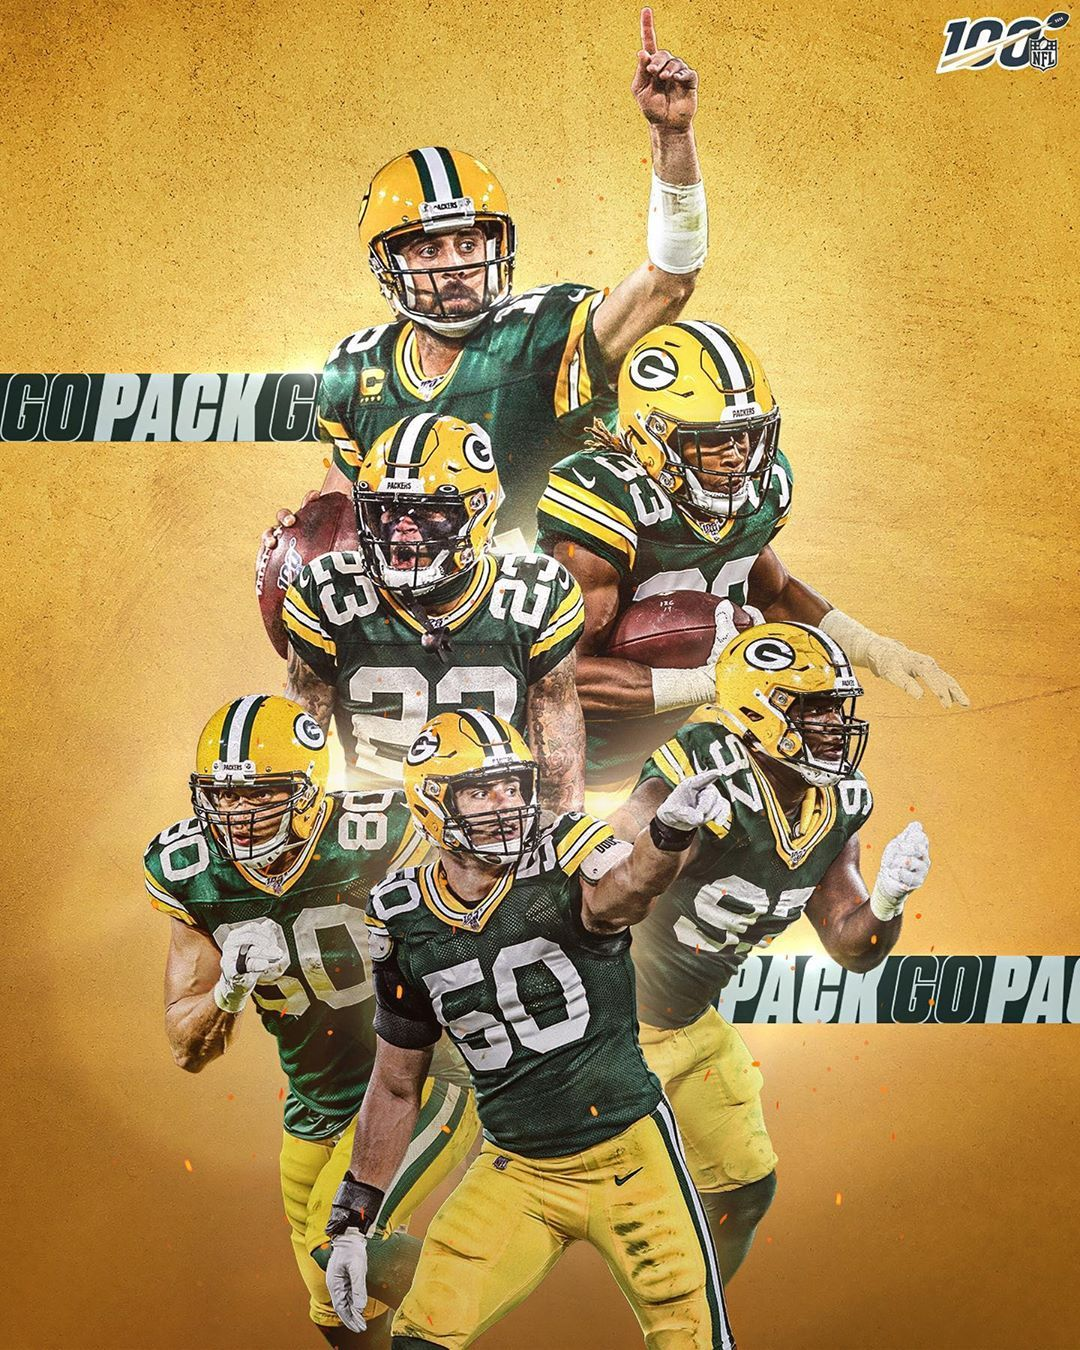 Nfl The Packers Improve To 4 1 And Sit Atop The Nfc North Nfc North Packers Go Packers